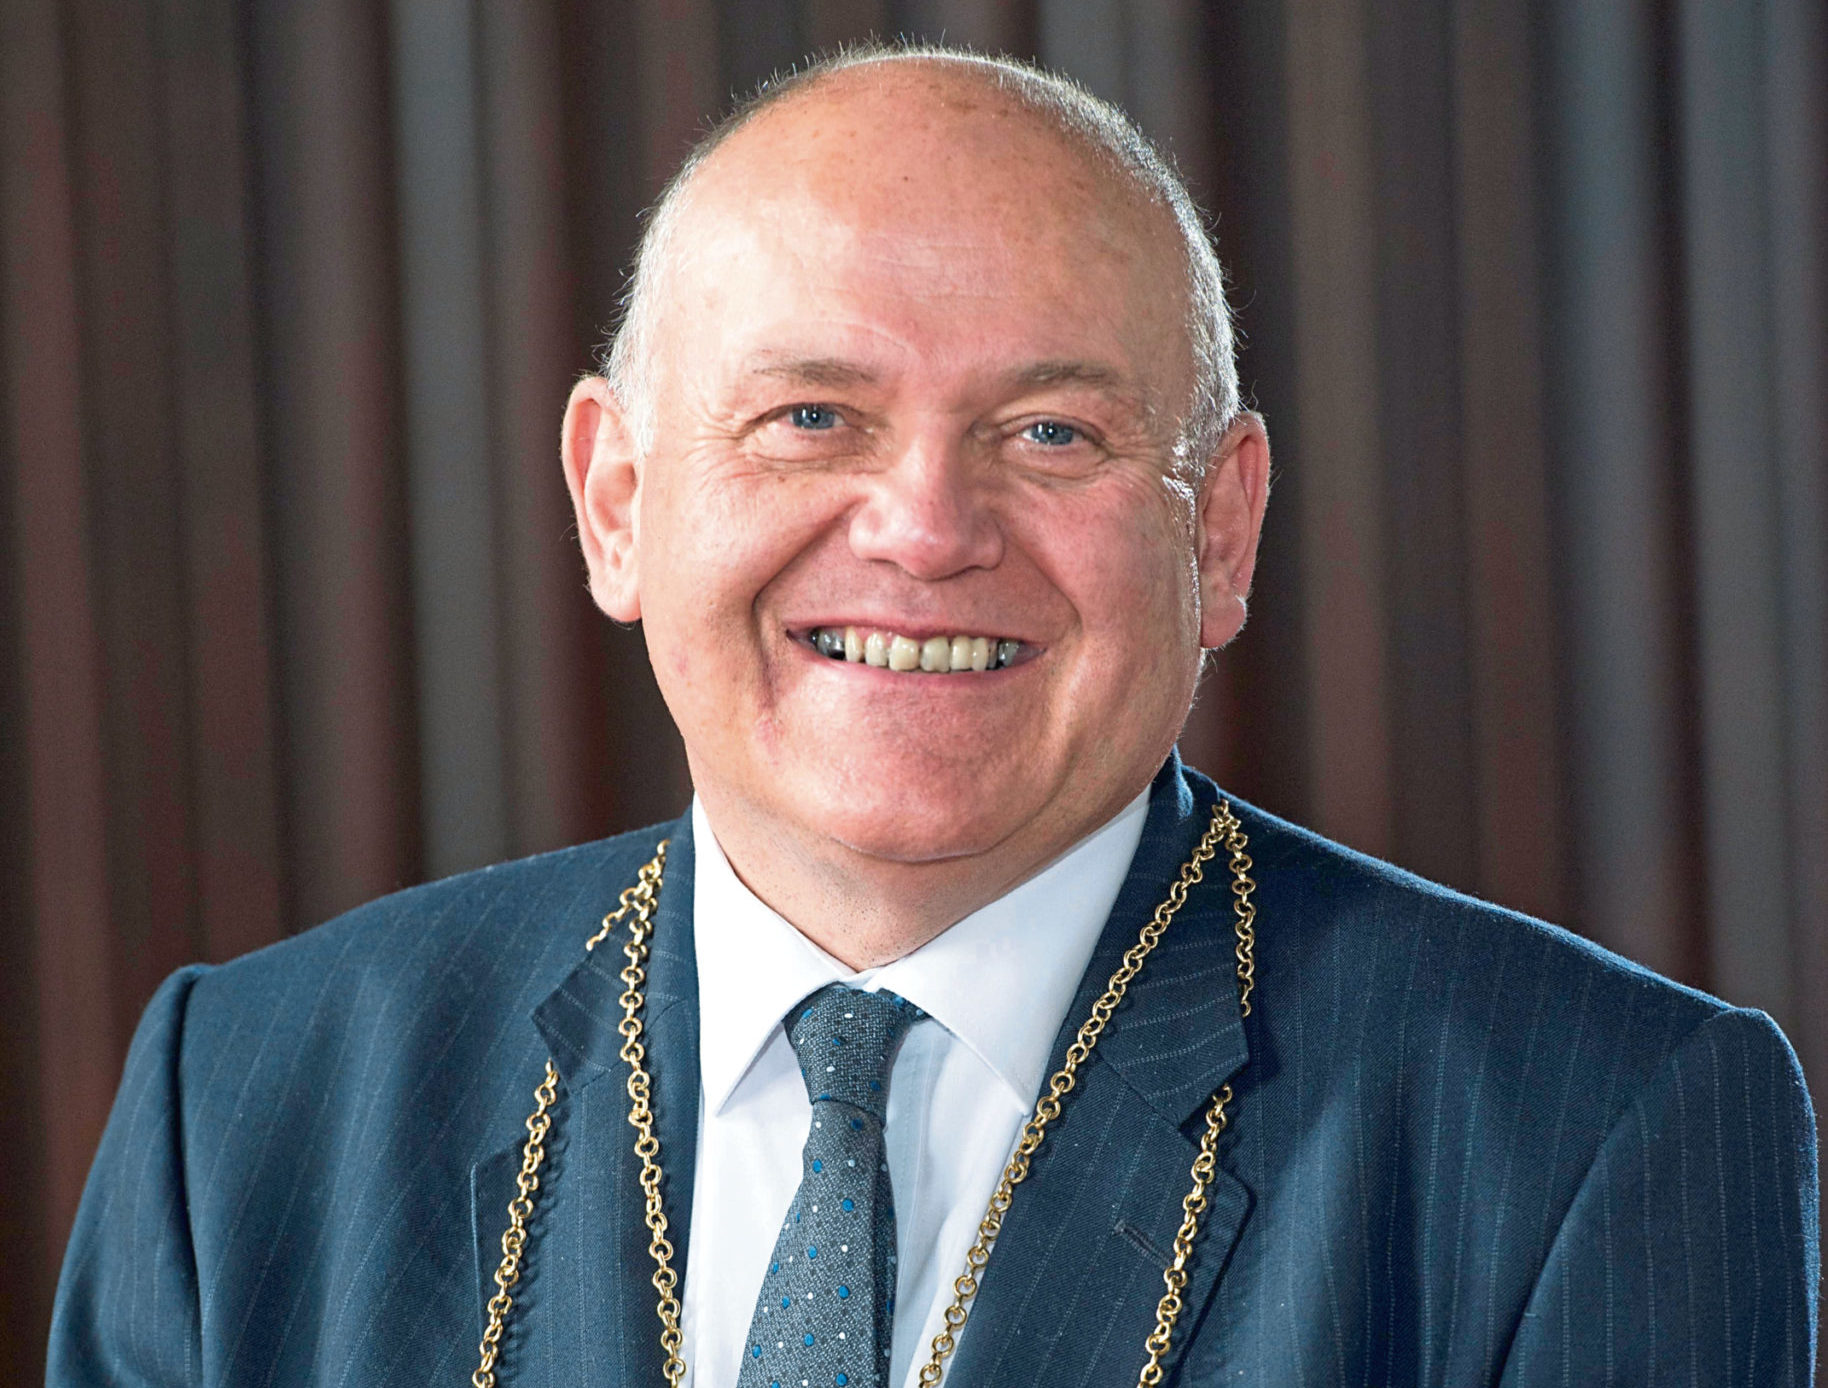 Lord Provost Barney Crockett has signed up to take part in trials for a Covid-19 vaccine